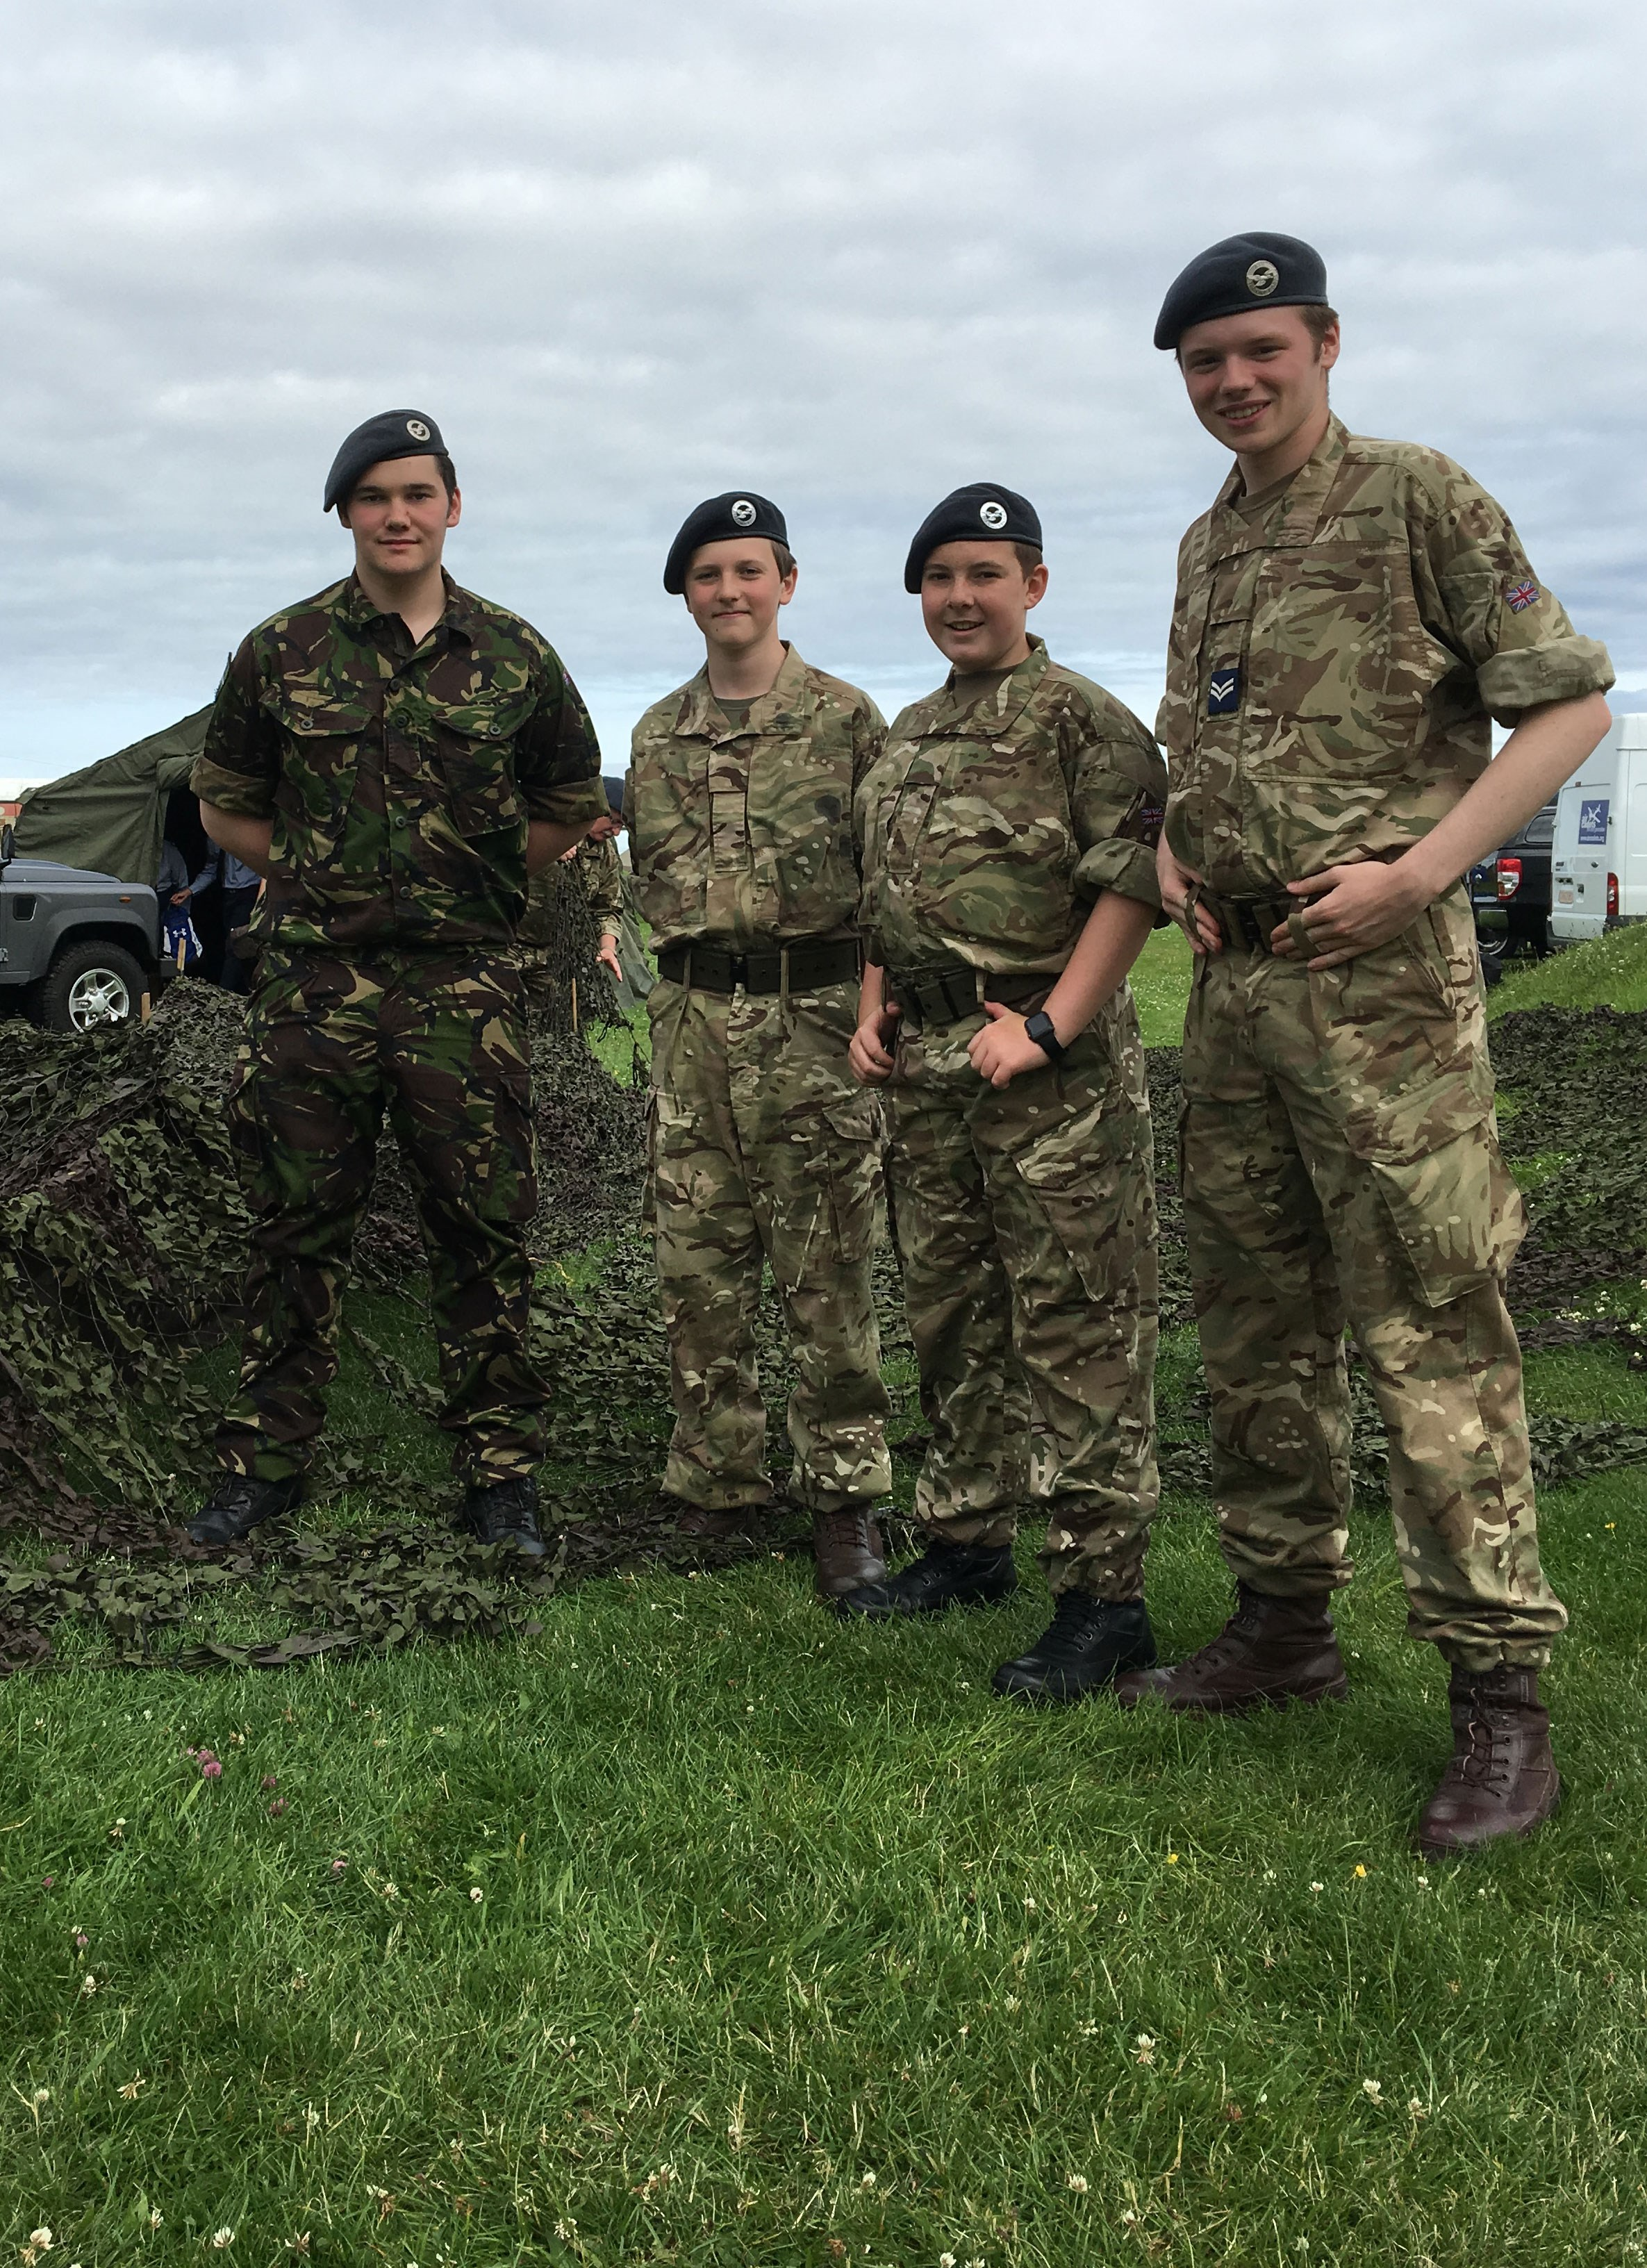 Royal Air Force cadets at Scotland's National Airshow 2016.